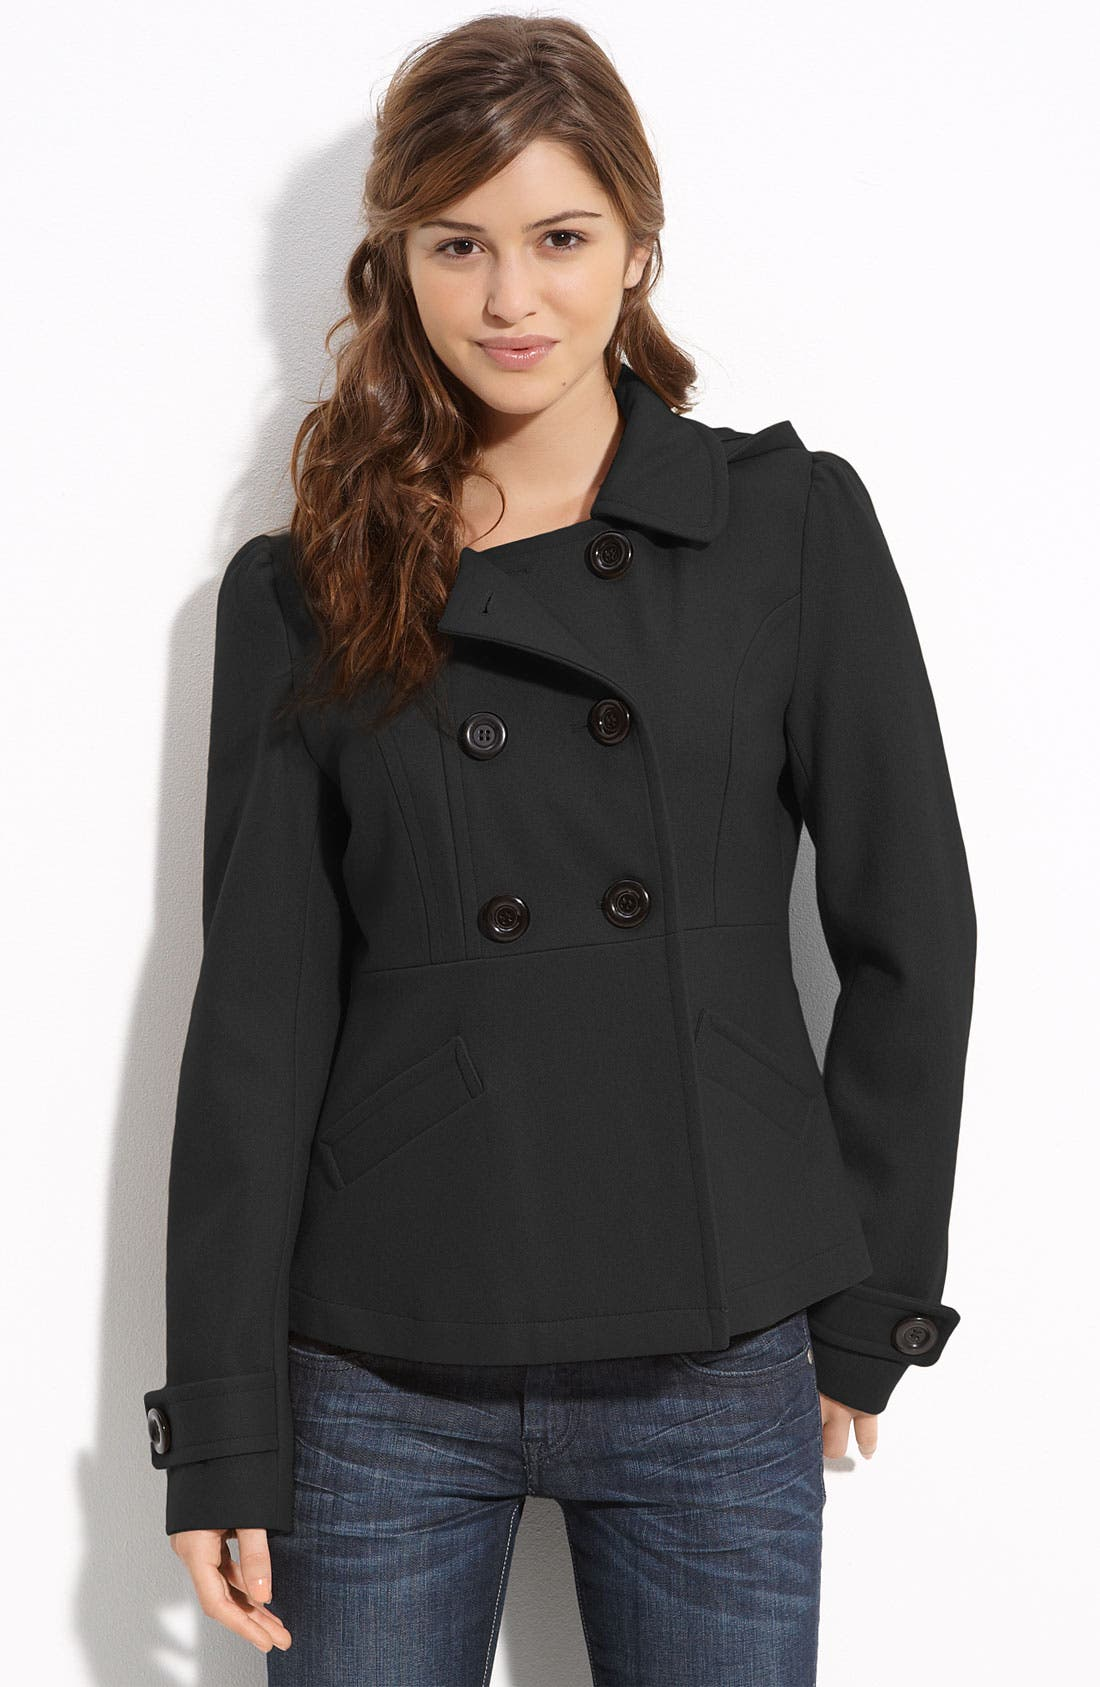 Alternate Image 1 Selected - Tulle 'Kate' Double Breasted Peacoat (Juniors)